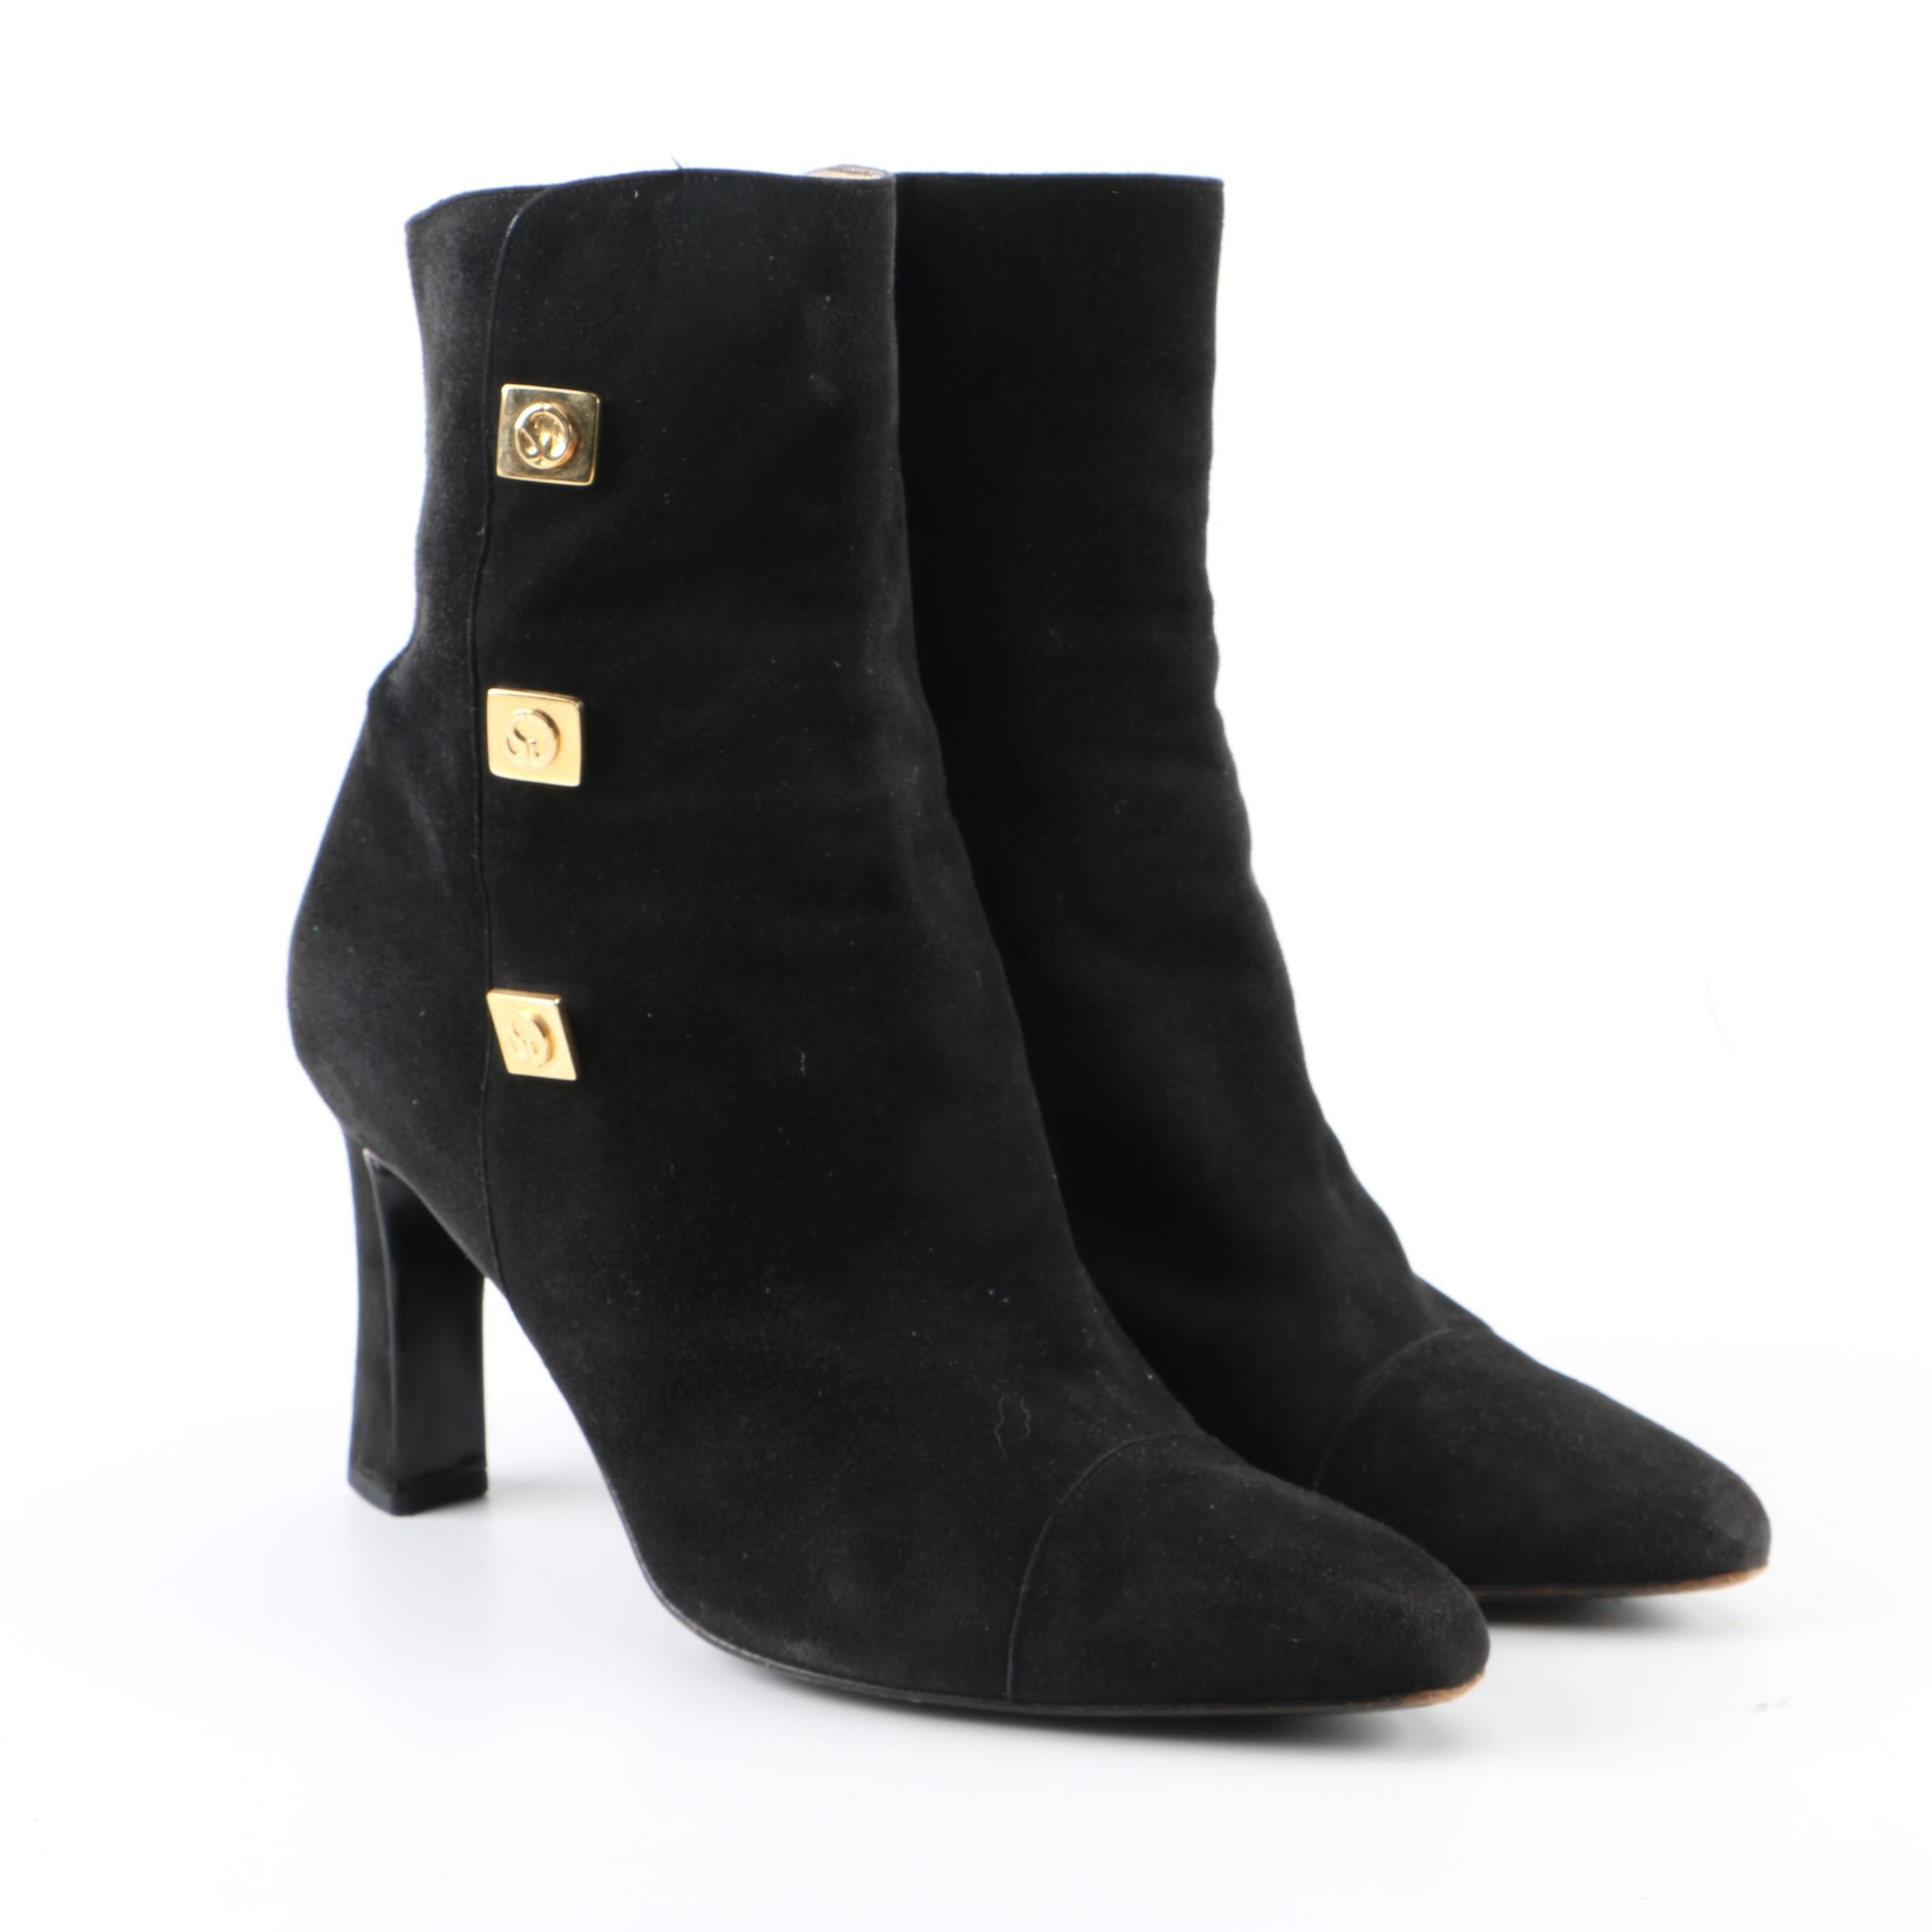 Women's St. John Black Suede Ankle Boots